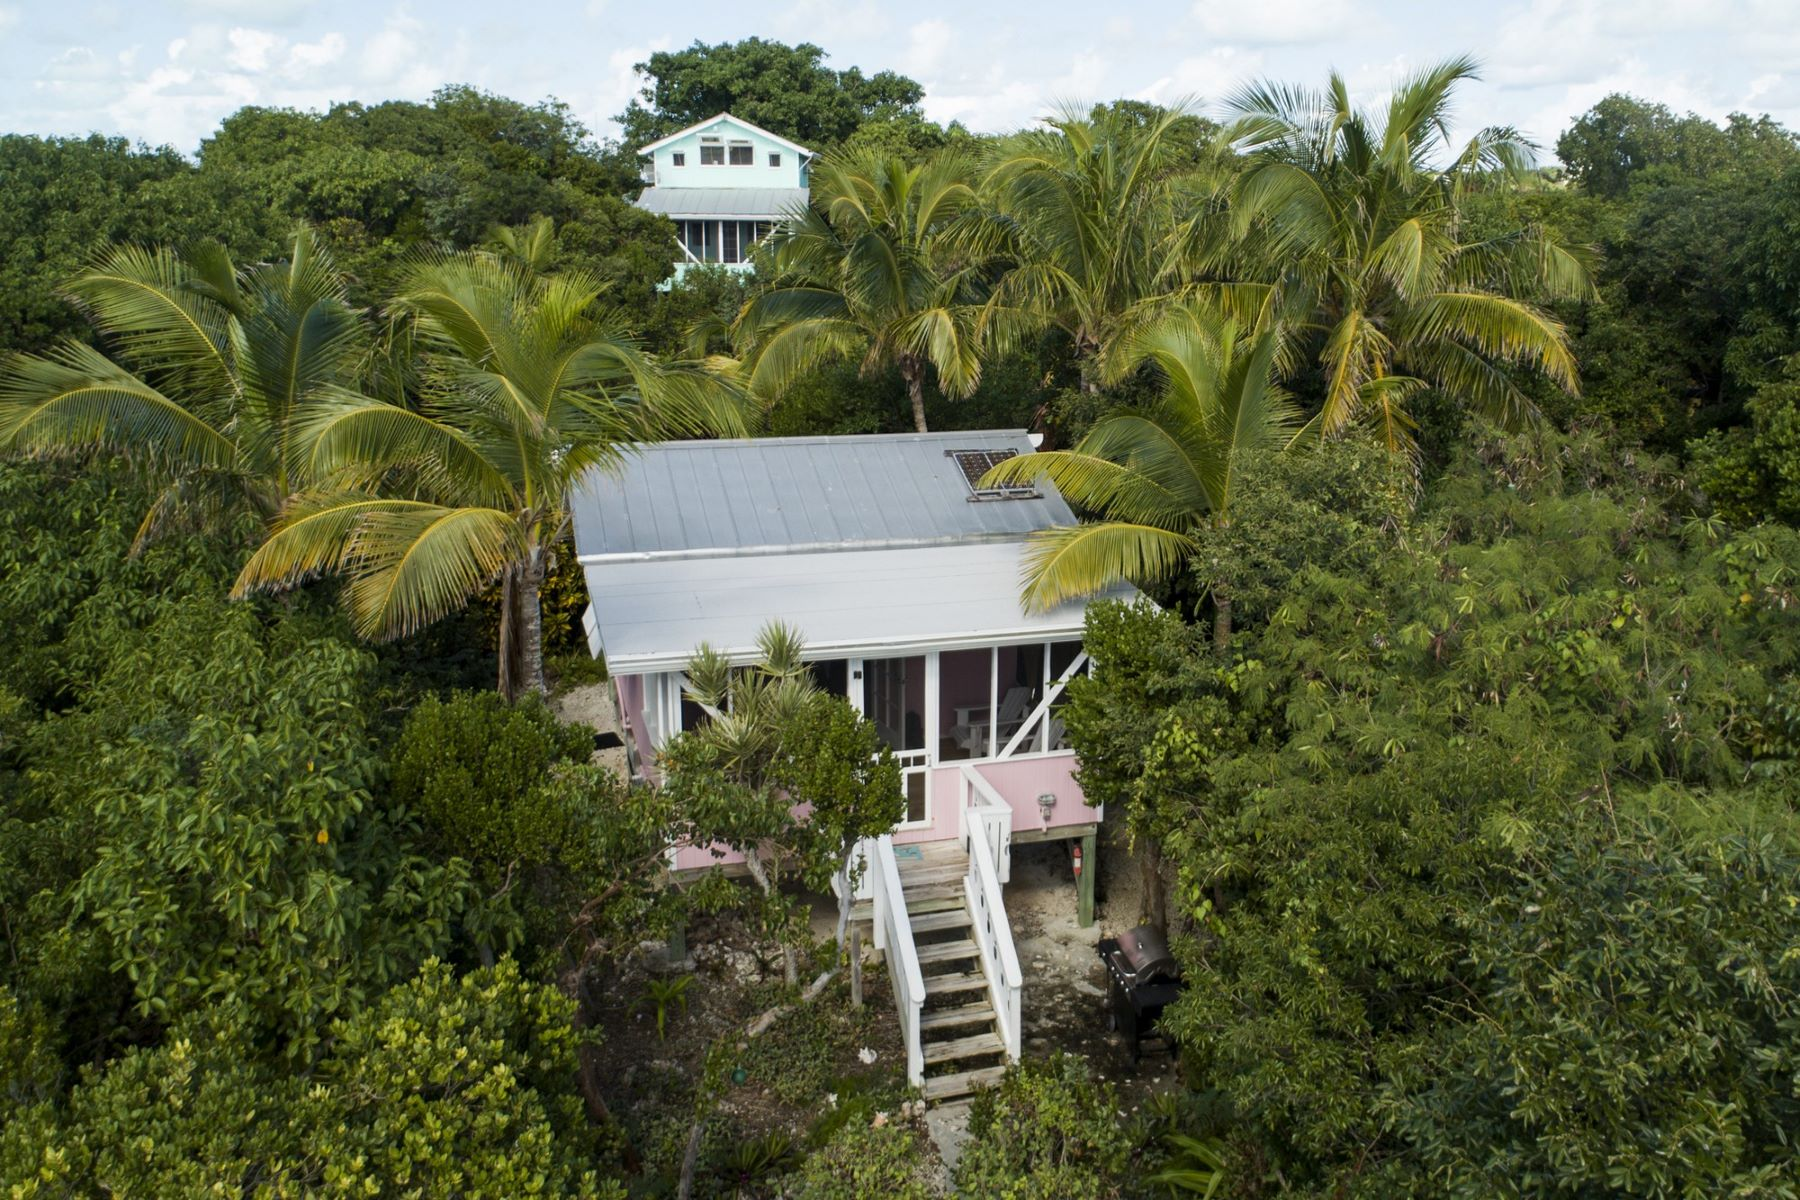 Maison unifamiliale pour l Vente à Watercolors Cottages Lubbers Quarters, Abaco Bahamas